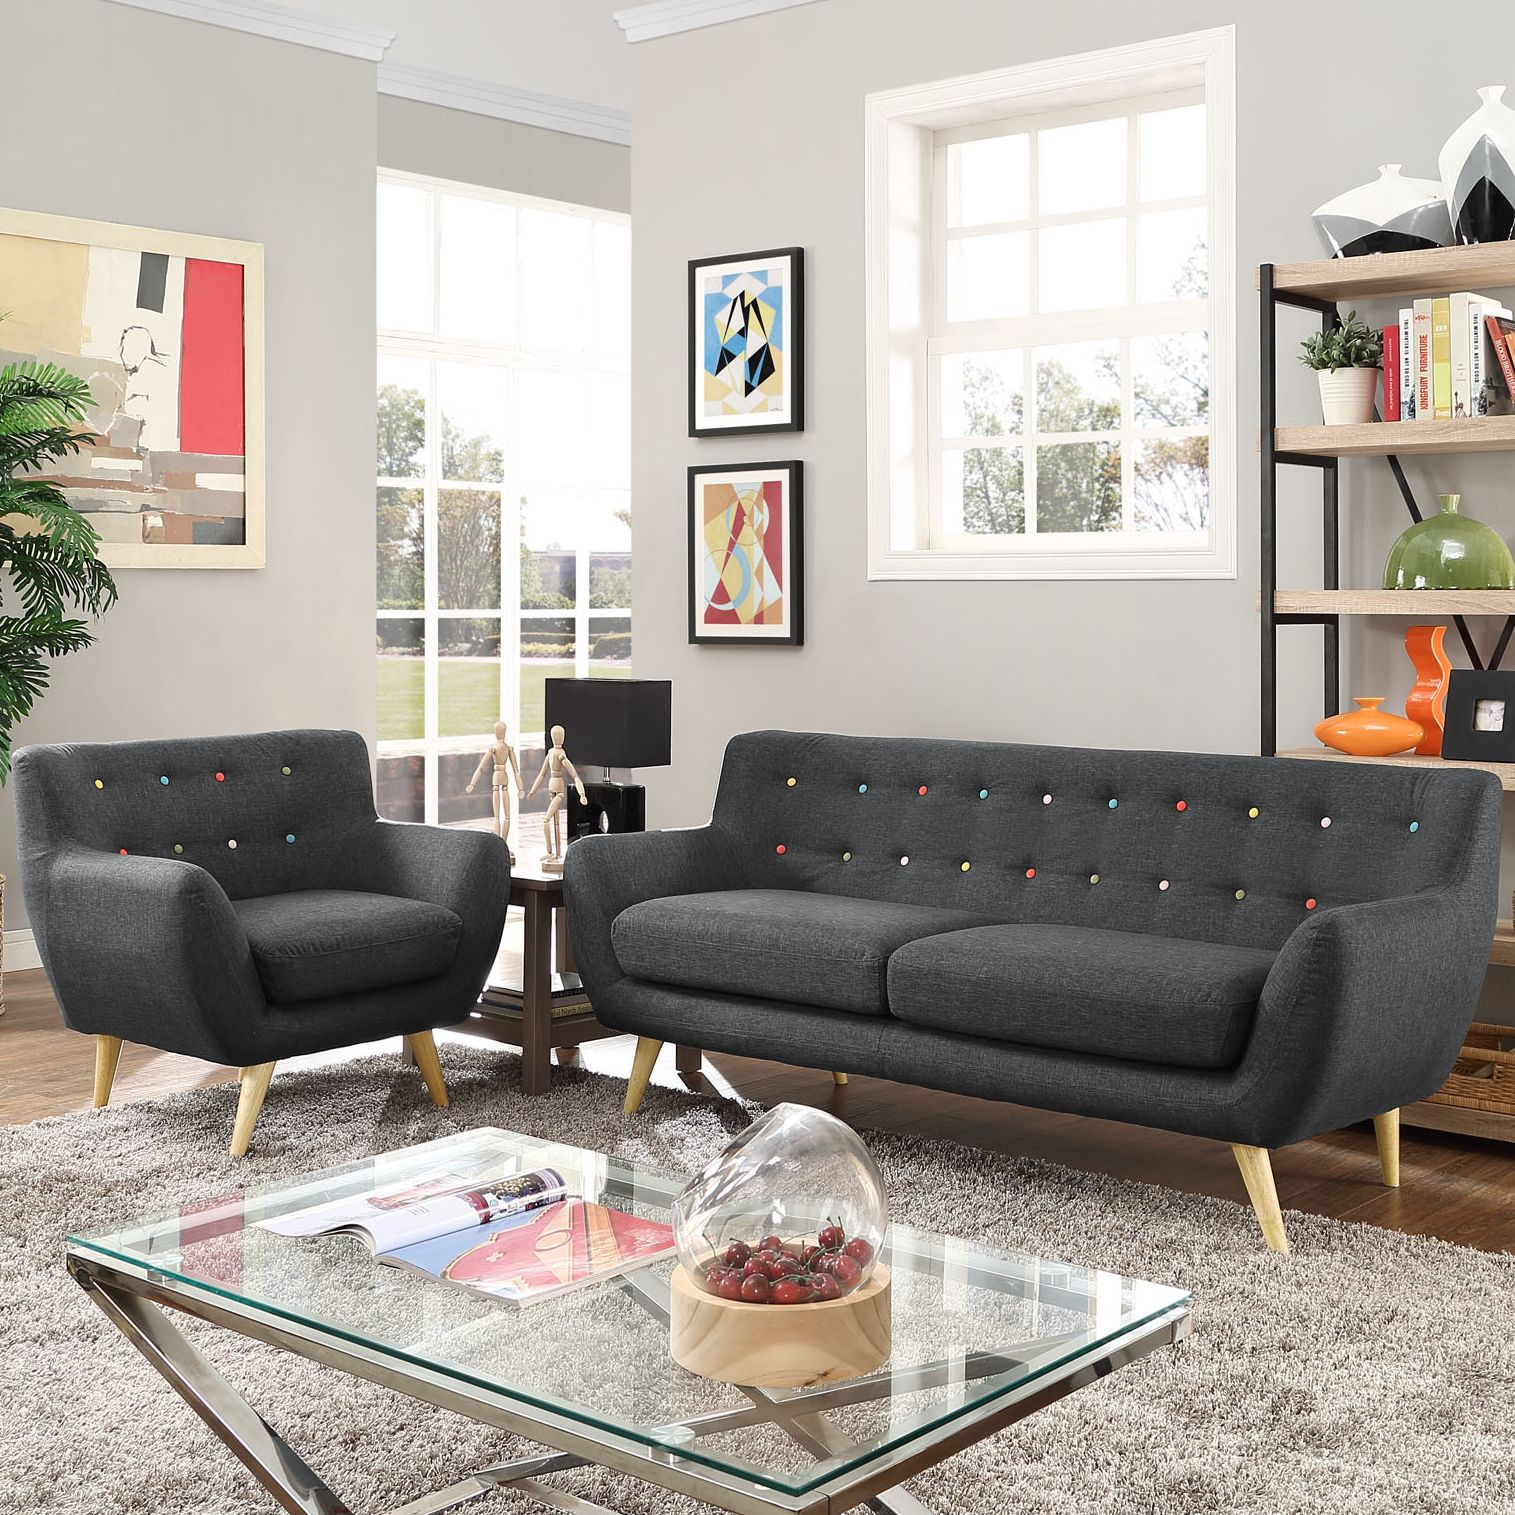 Best 15 Awesome Initiatives Of How To Build Full Living Room 400 x 300